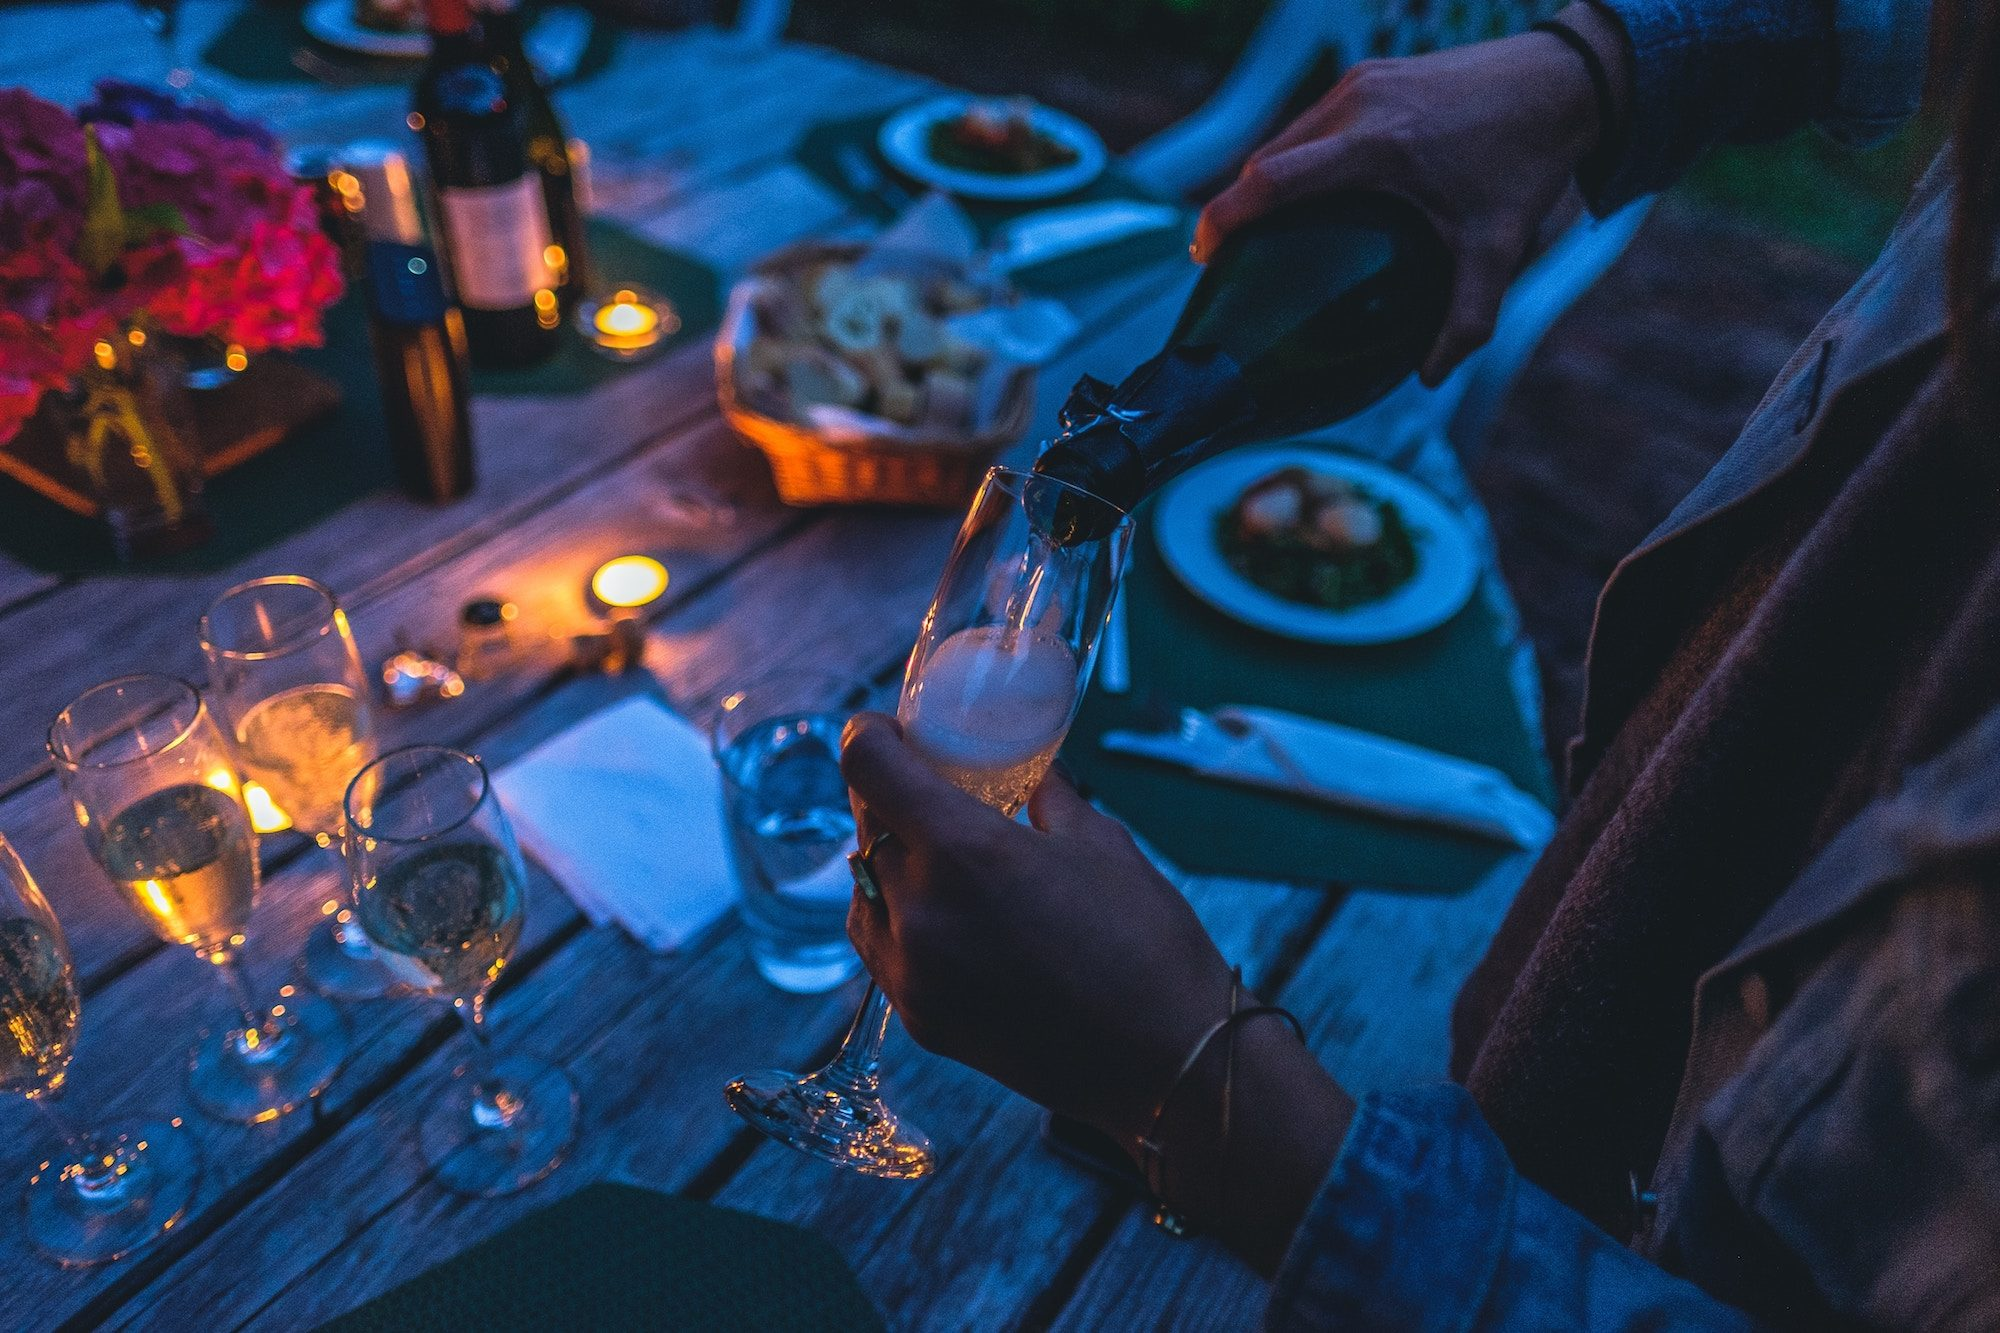 A woman pouring a glass of champagne at an outdoor candle-lit dinner on New Year's Eve.